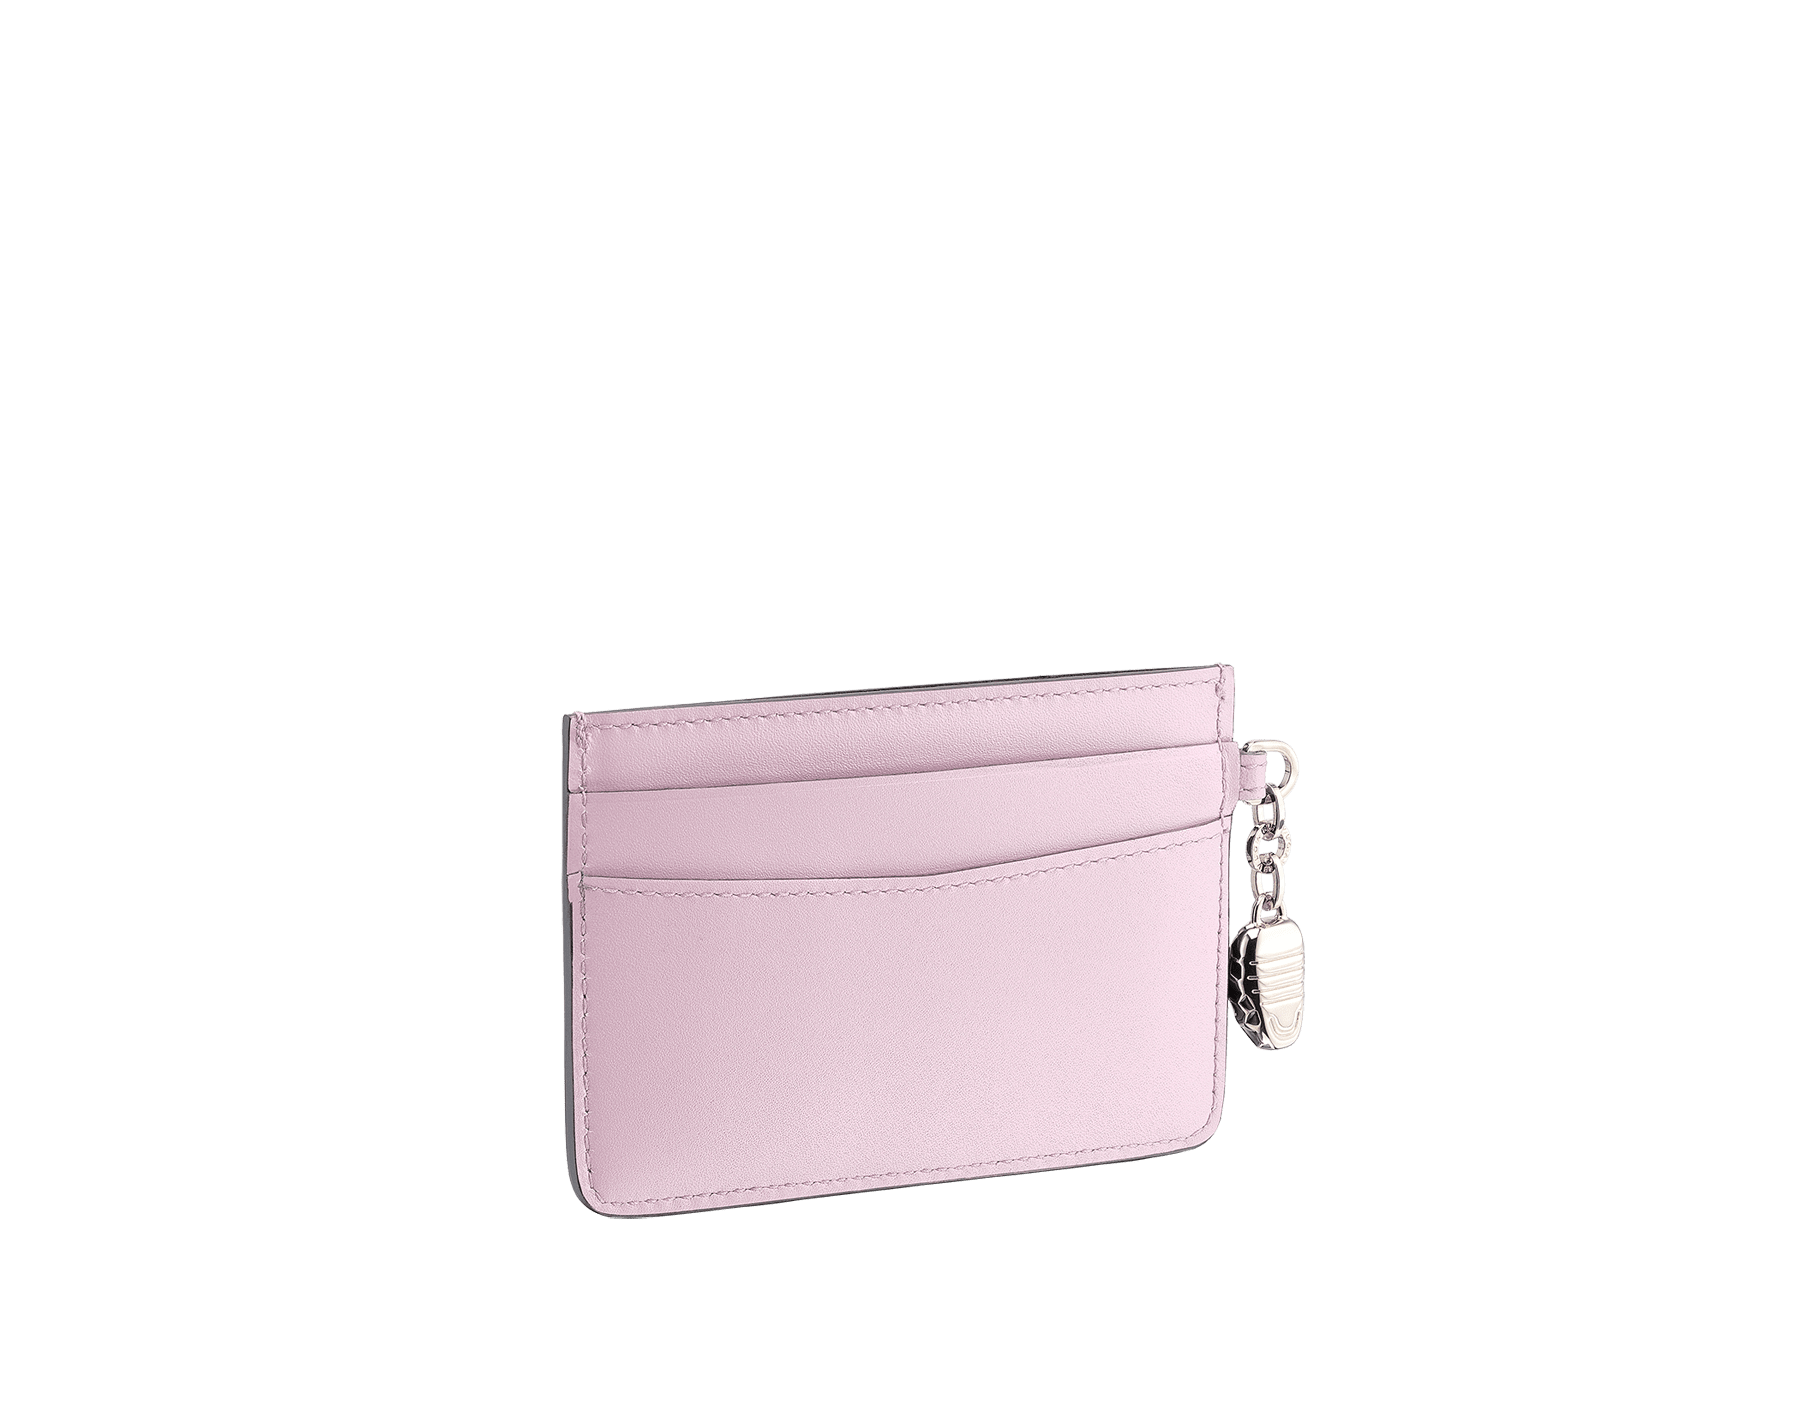 Serpenti Forever credit card holder in sea star coral and pink spinel calf leather. Iconic snakehead charm in black and white enamel, with green malachite enamel eyes. SEA-CC-HOLDER-CLb image 2